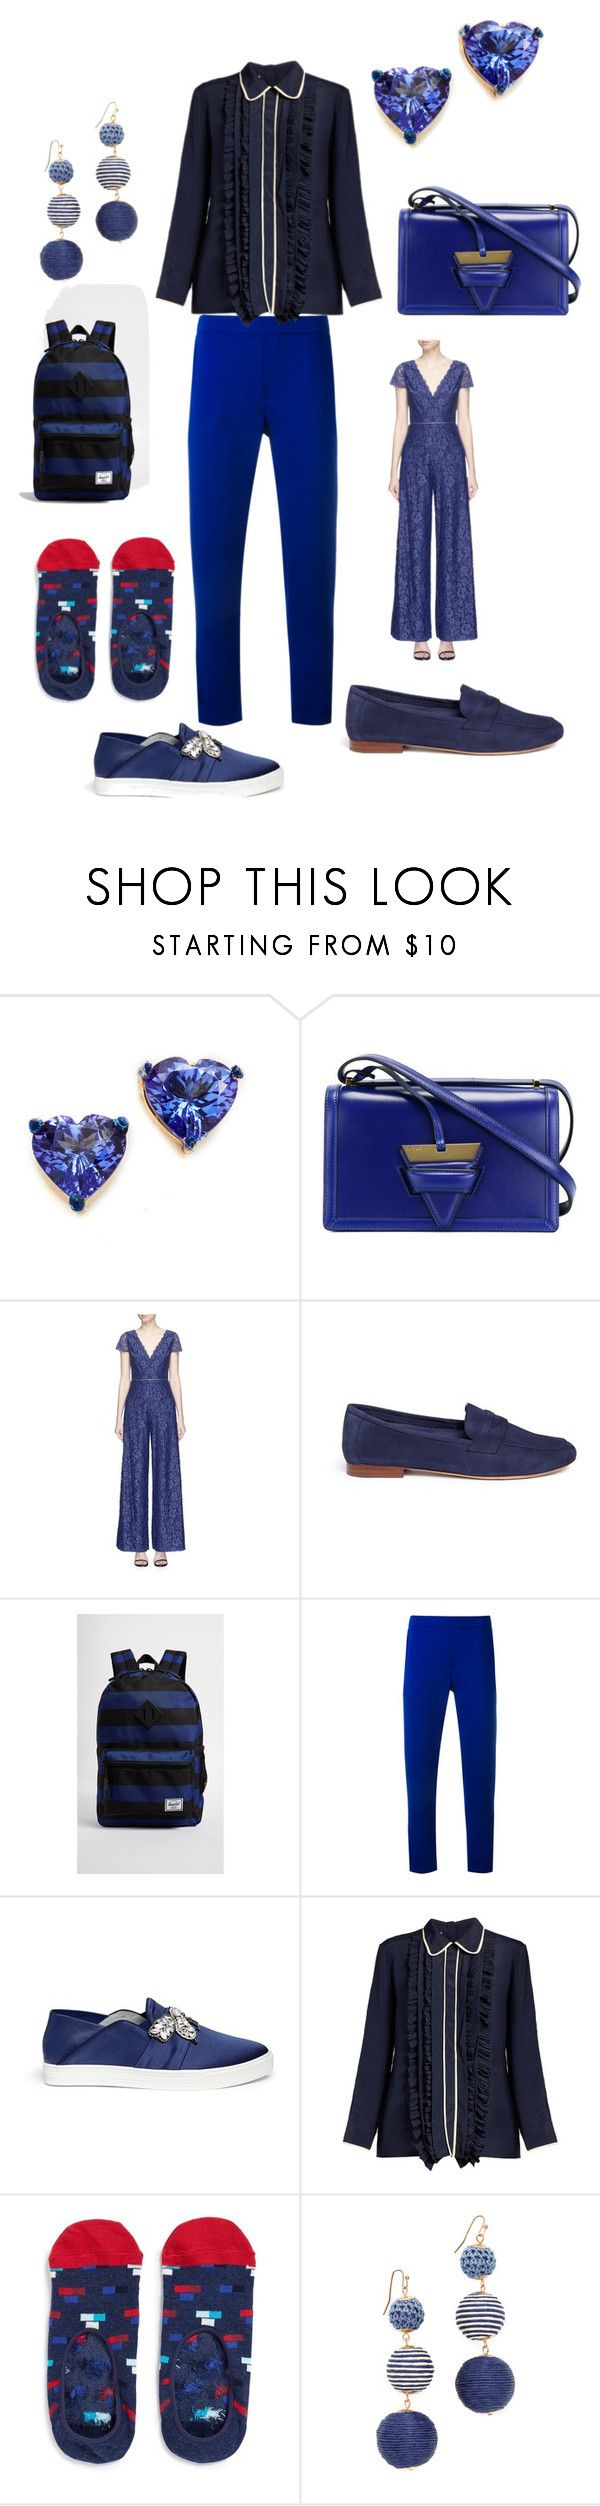 """""""remember the women"""" by emmamegan-5678 ❤ liked on Polyvore featuring Holly Dyment, Loewe, Alice + Olivia, Mansur Gavriel, Herschel Supply Co., P.A.R.O.S.H., Pedder Red, Marni, Happy Socks and Shashi"""